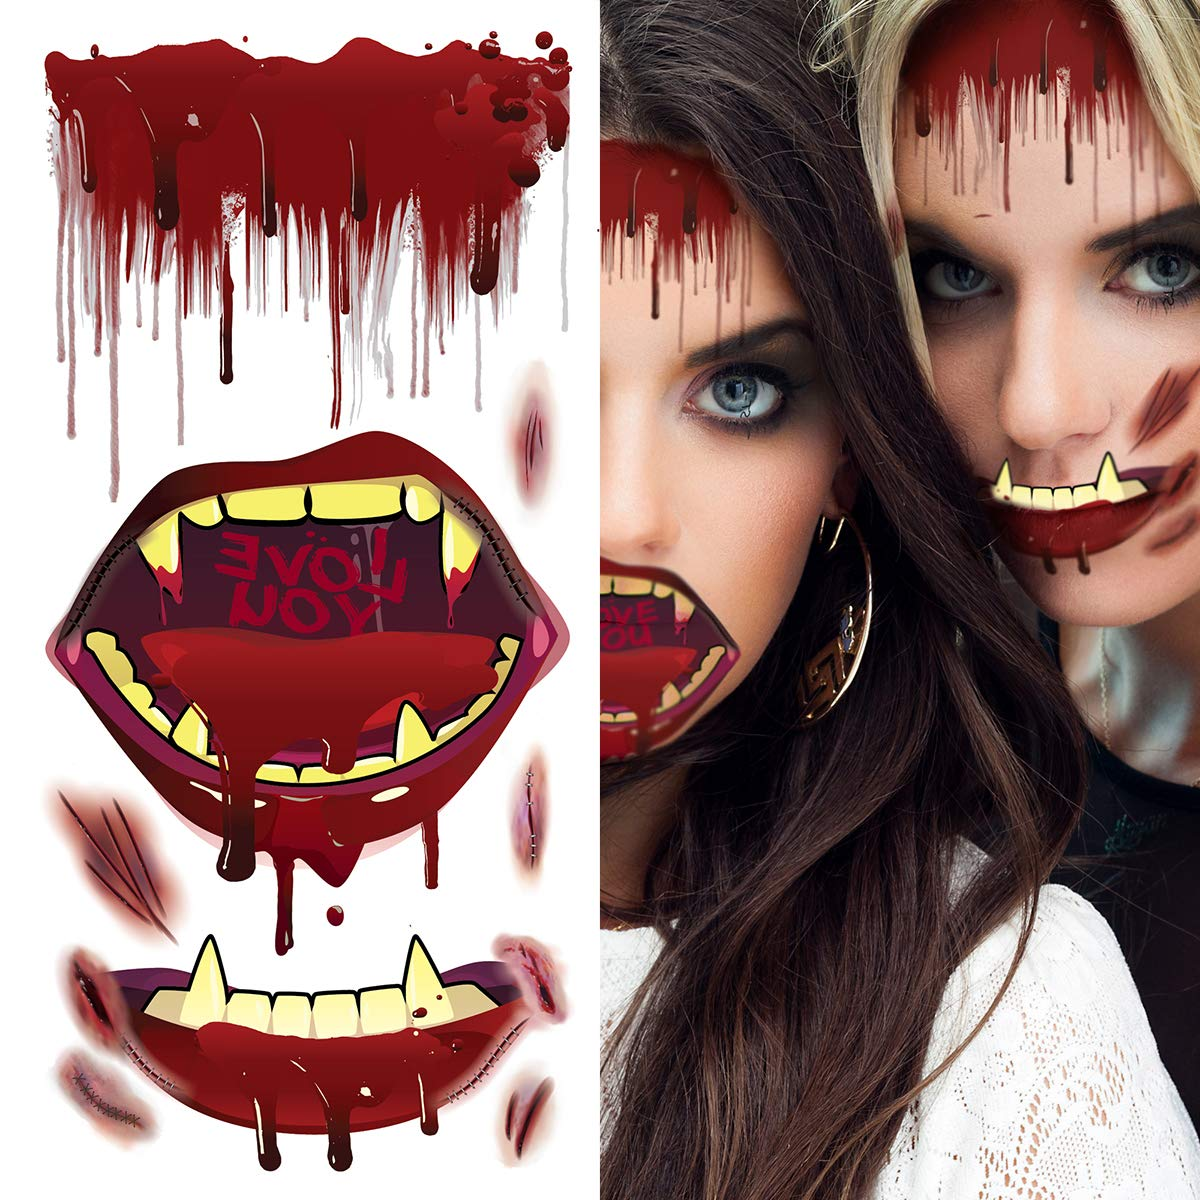 Supperb Temporary Tattoos – Bleeding Vampire Mouth Wound, Scar Bloody mouth and teeth Vampire Zombie Halloween makeup Halloween Tattoos